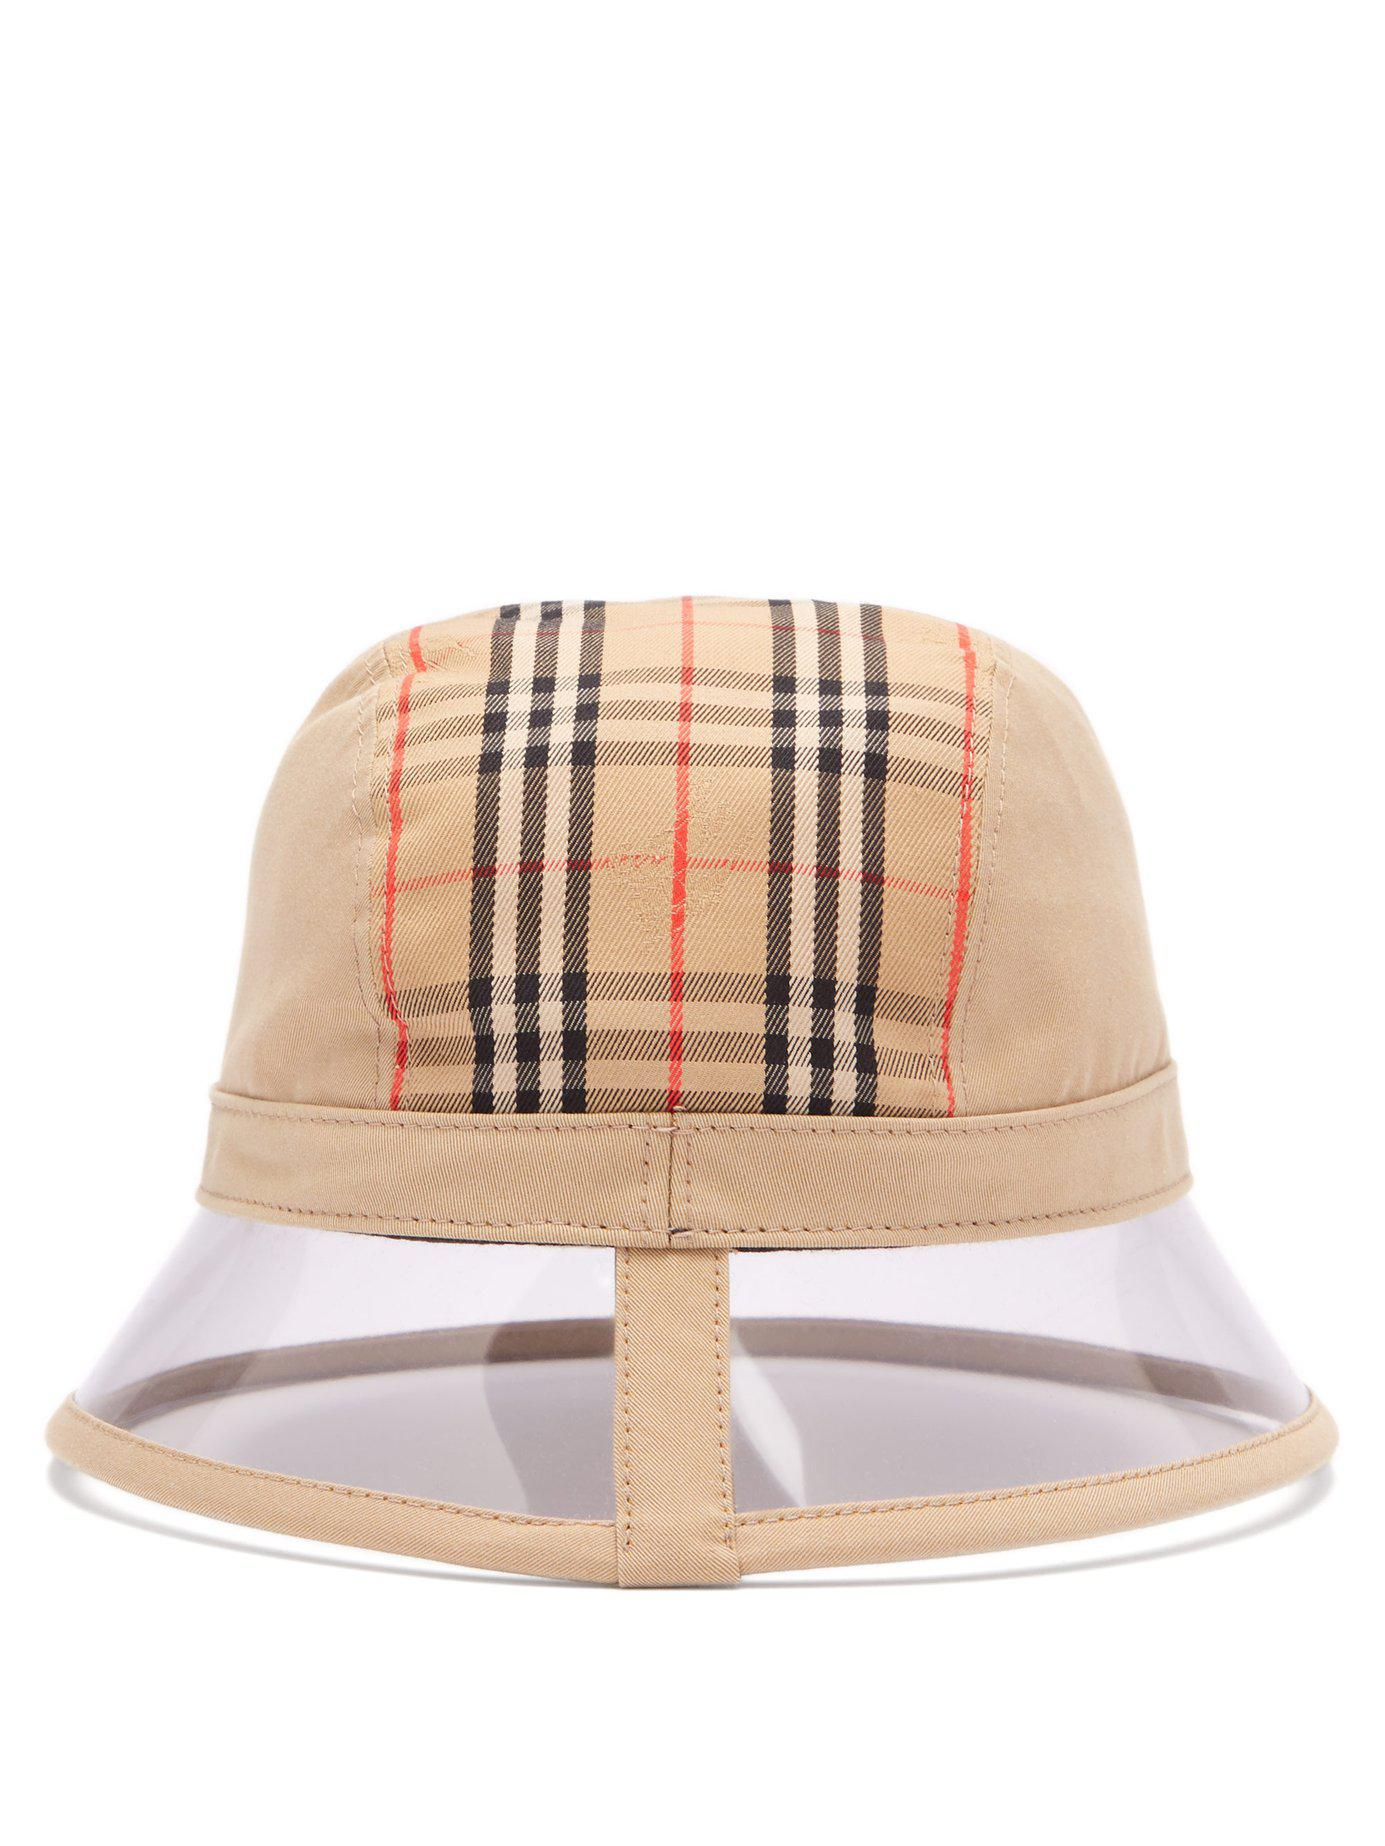 8f1806cc745 Lyst - Burberry 1983 Vintage Check Bucket Hat in Natural